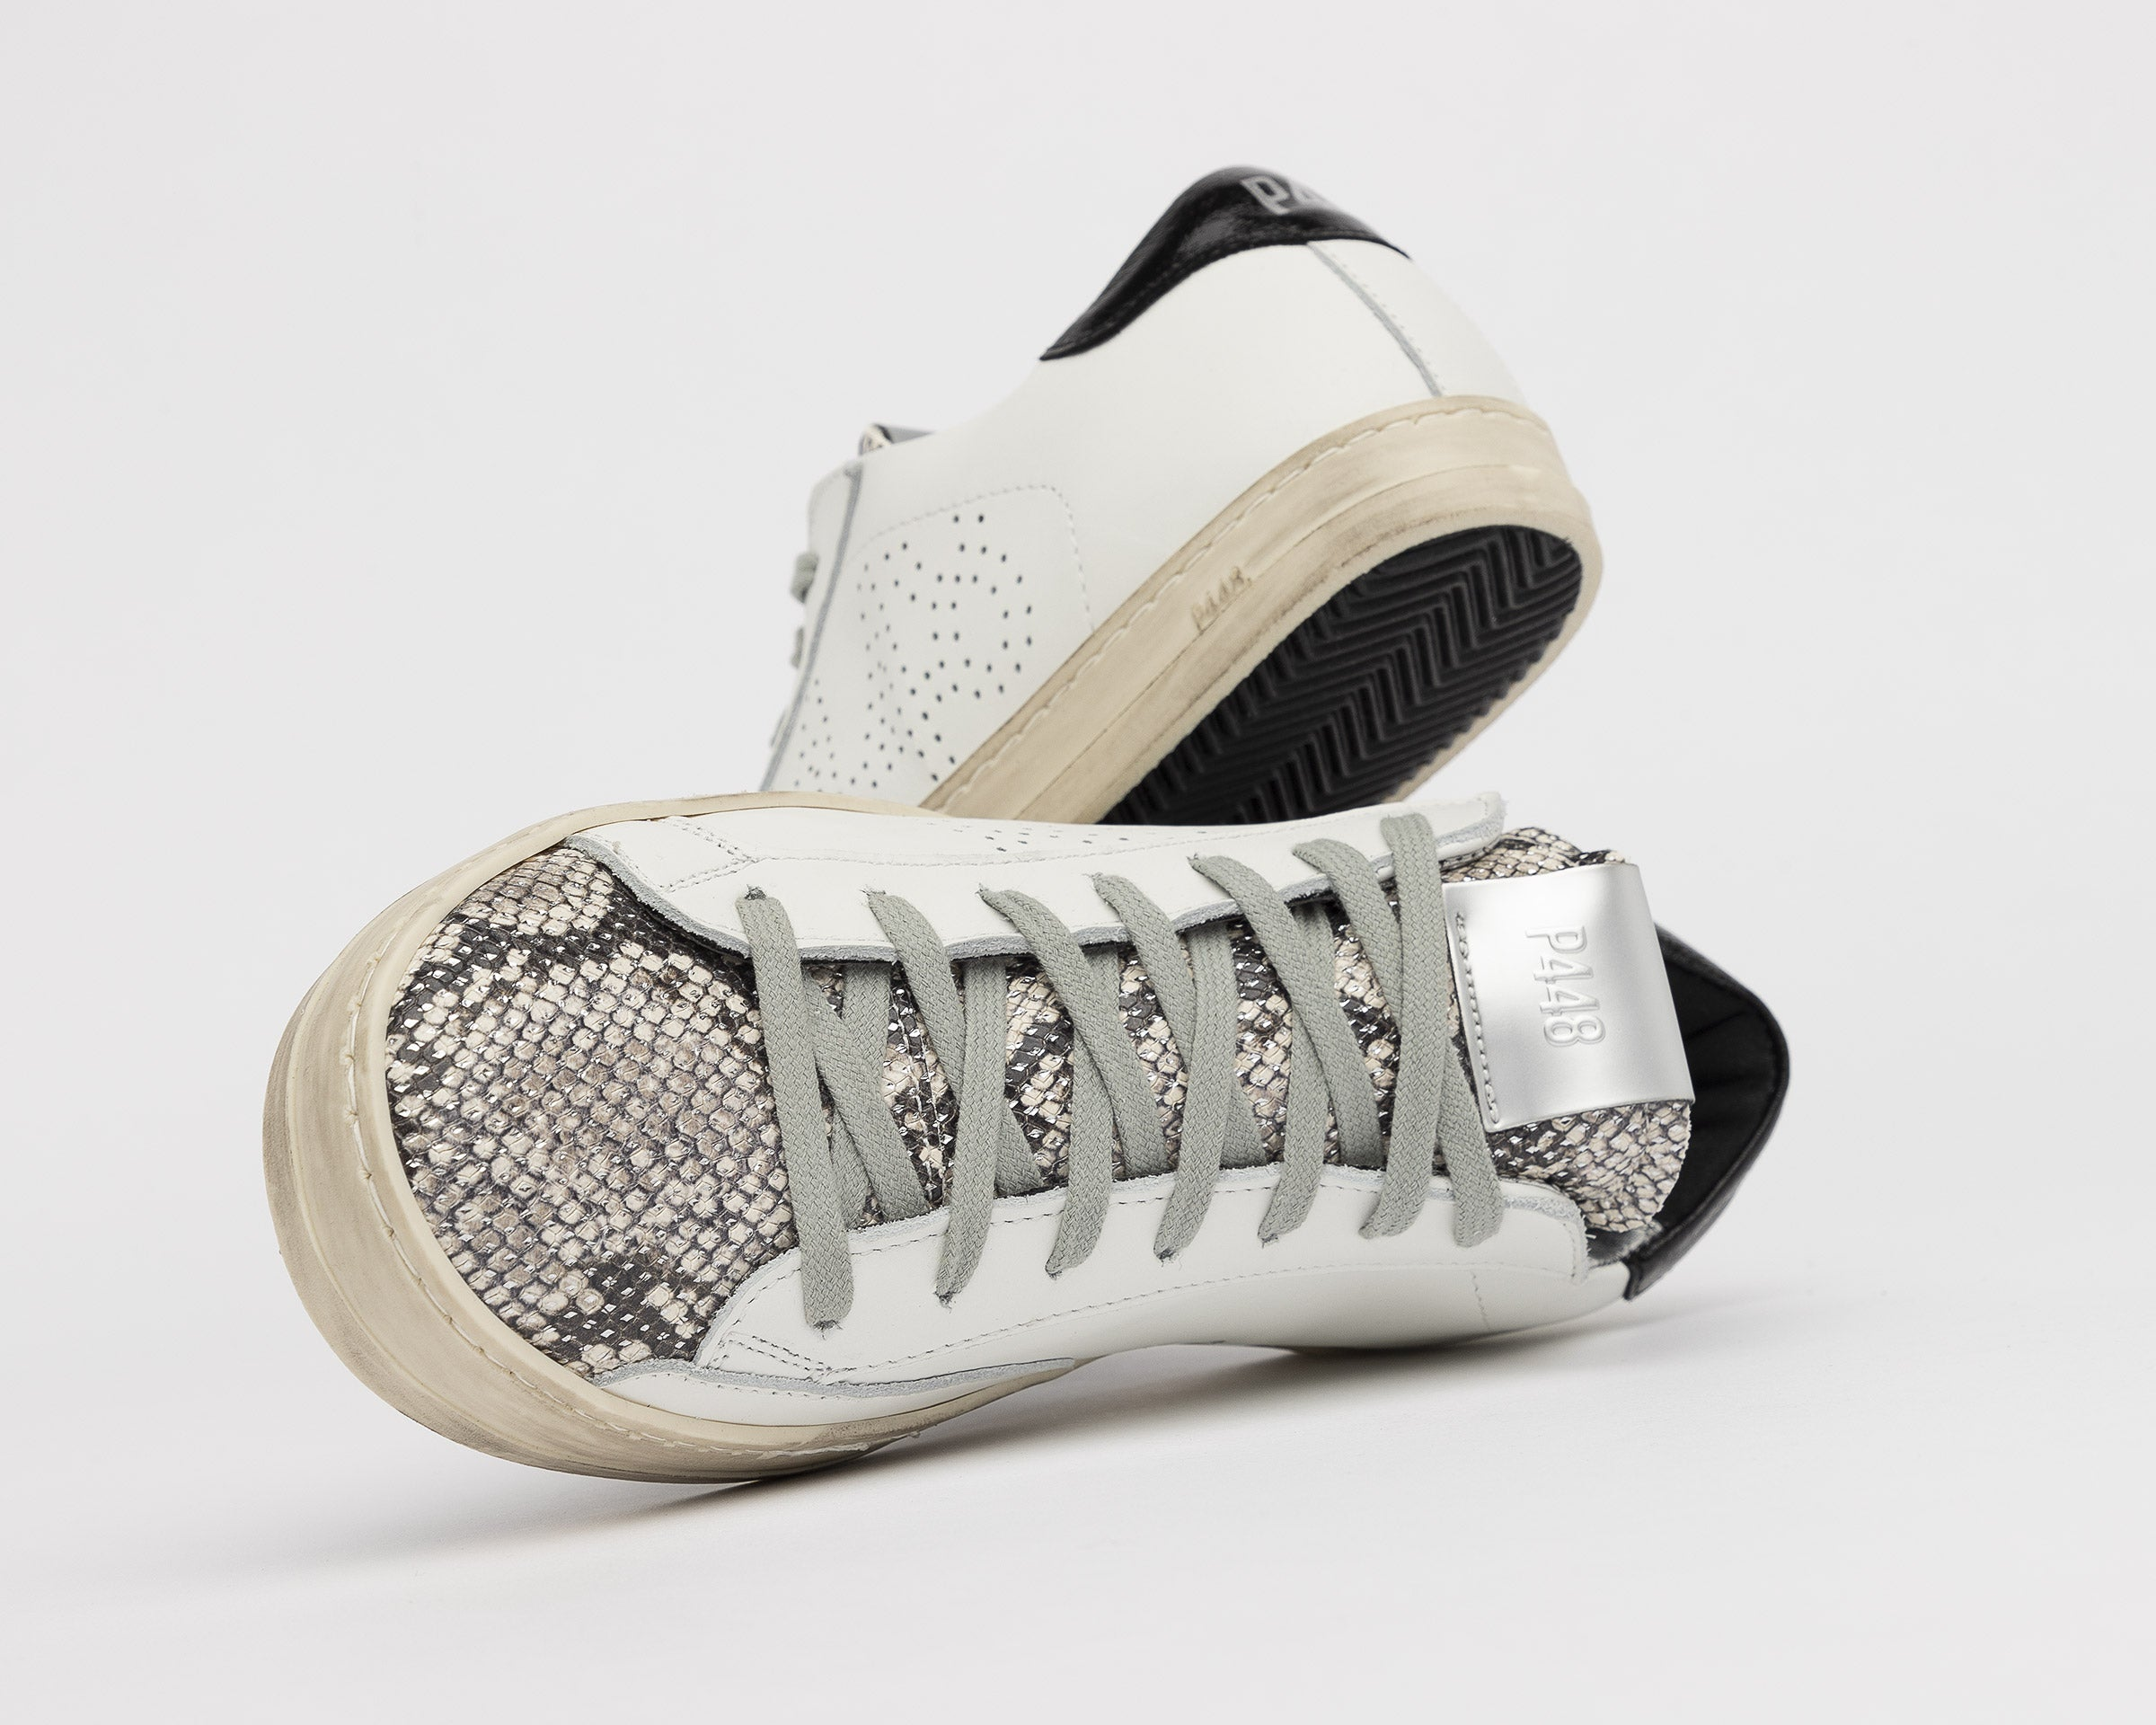 John Low-Top Sneaker in White/Silver Python - Detail 3